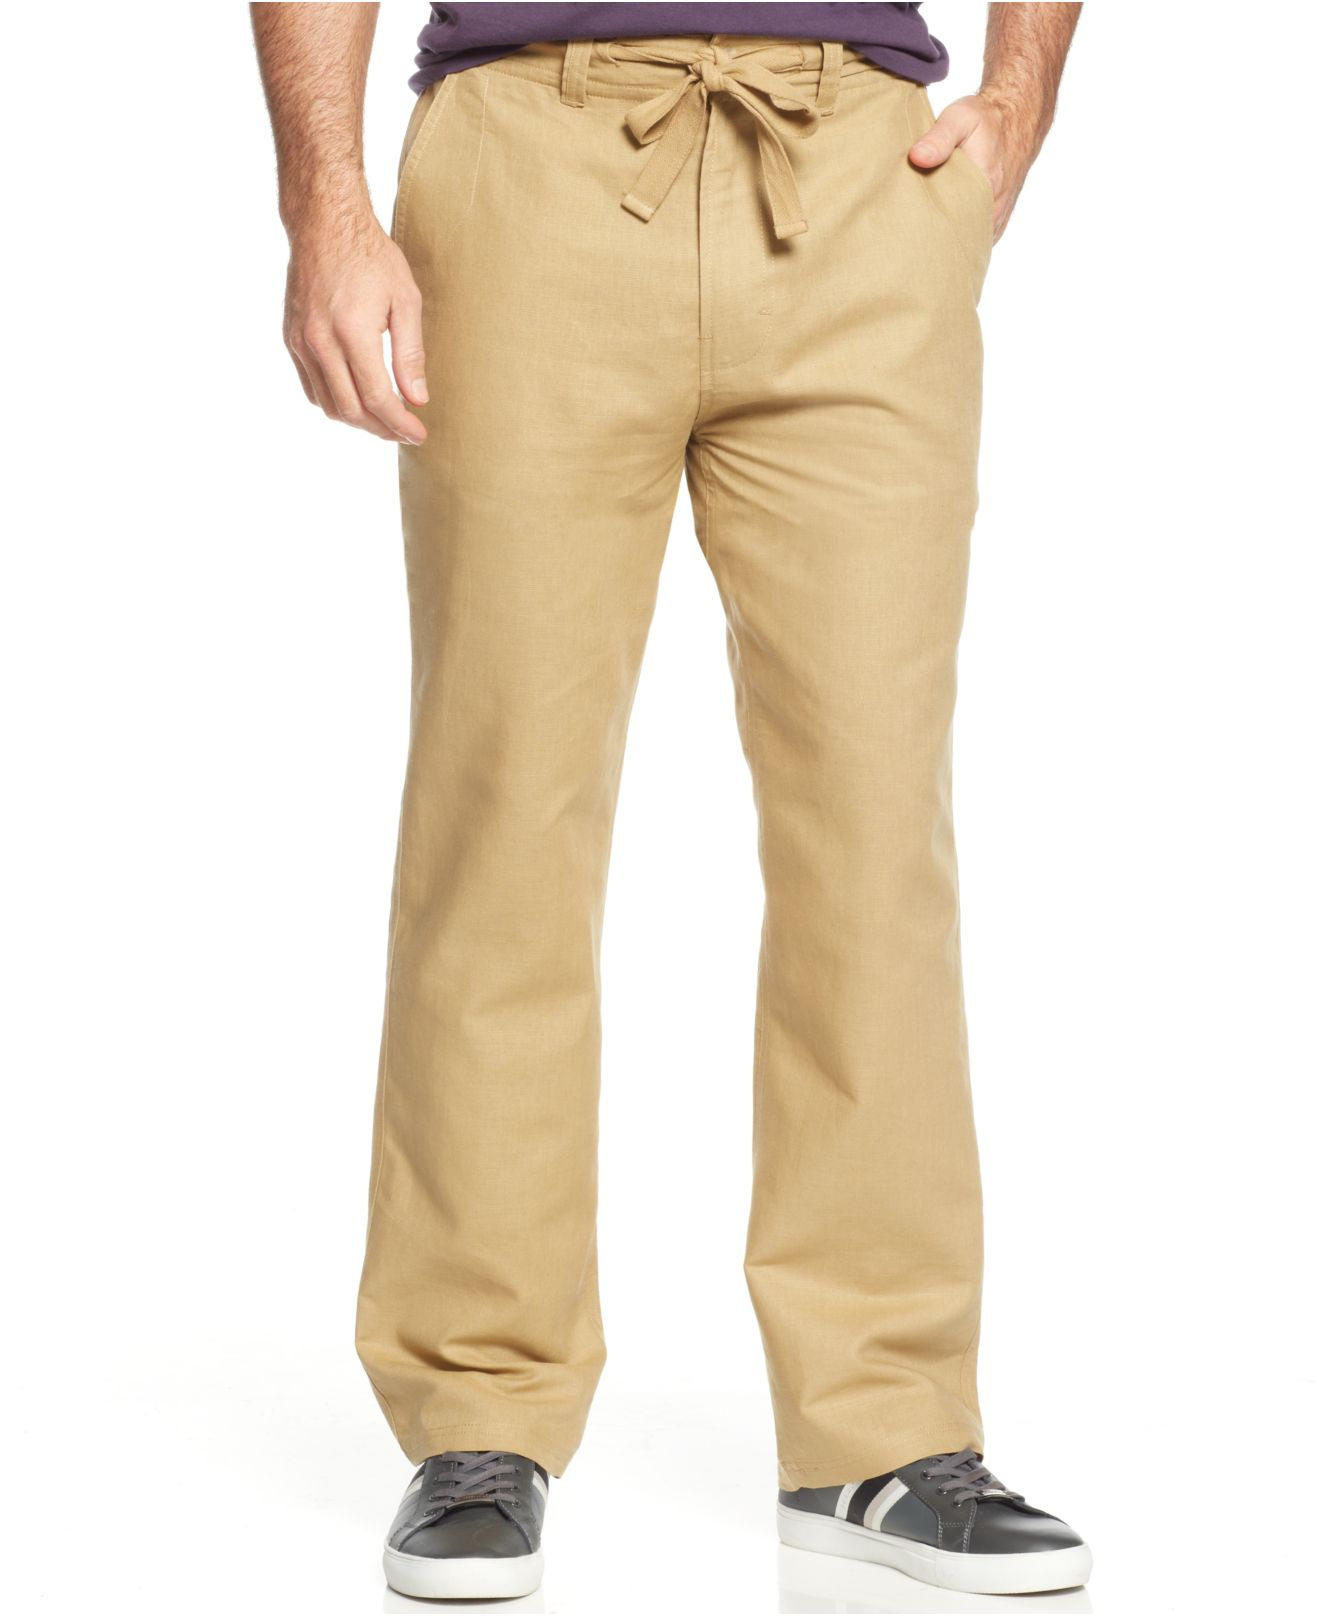 Shop for Men's Tall-Size Pants at REI - FREE SHIPPING With $50 minimum purchase. Top quality, great selection and expert advice you can trust. % Satisfaction Guarantee.